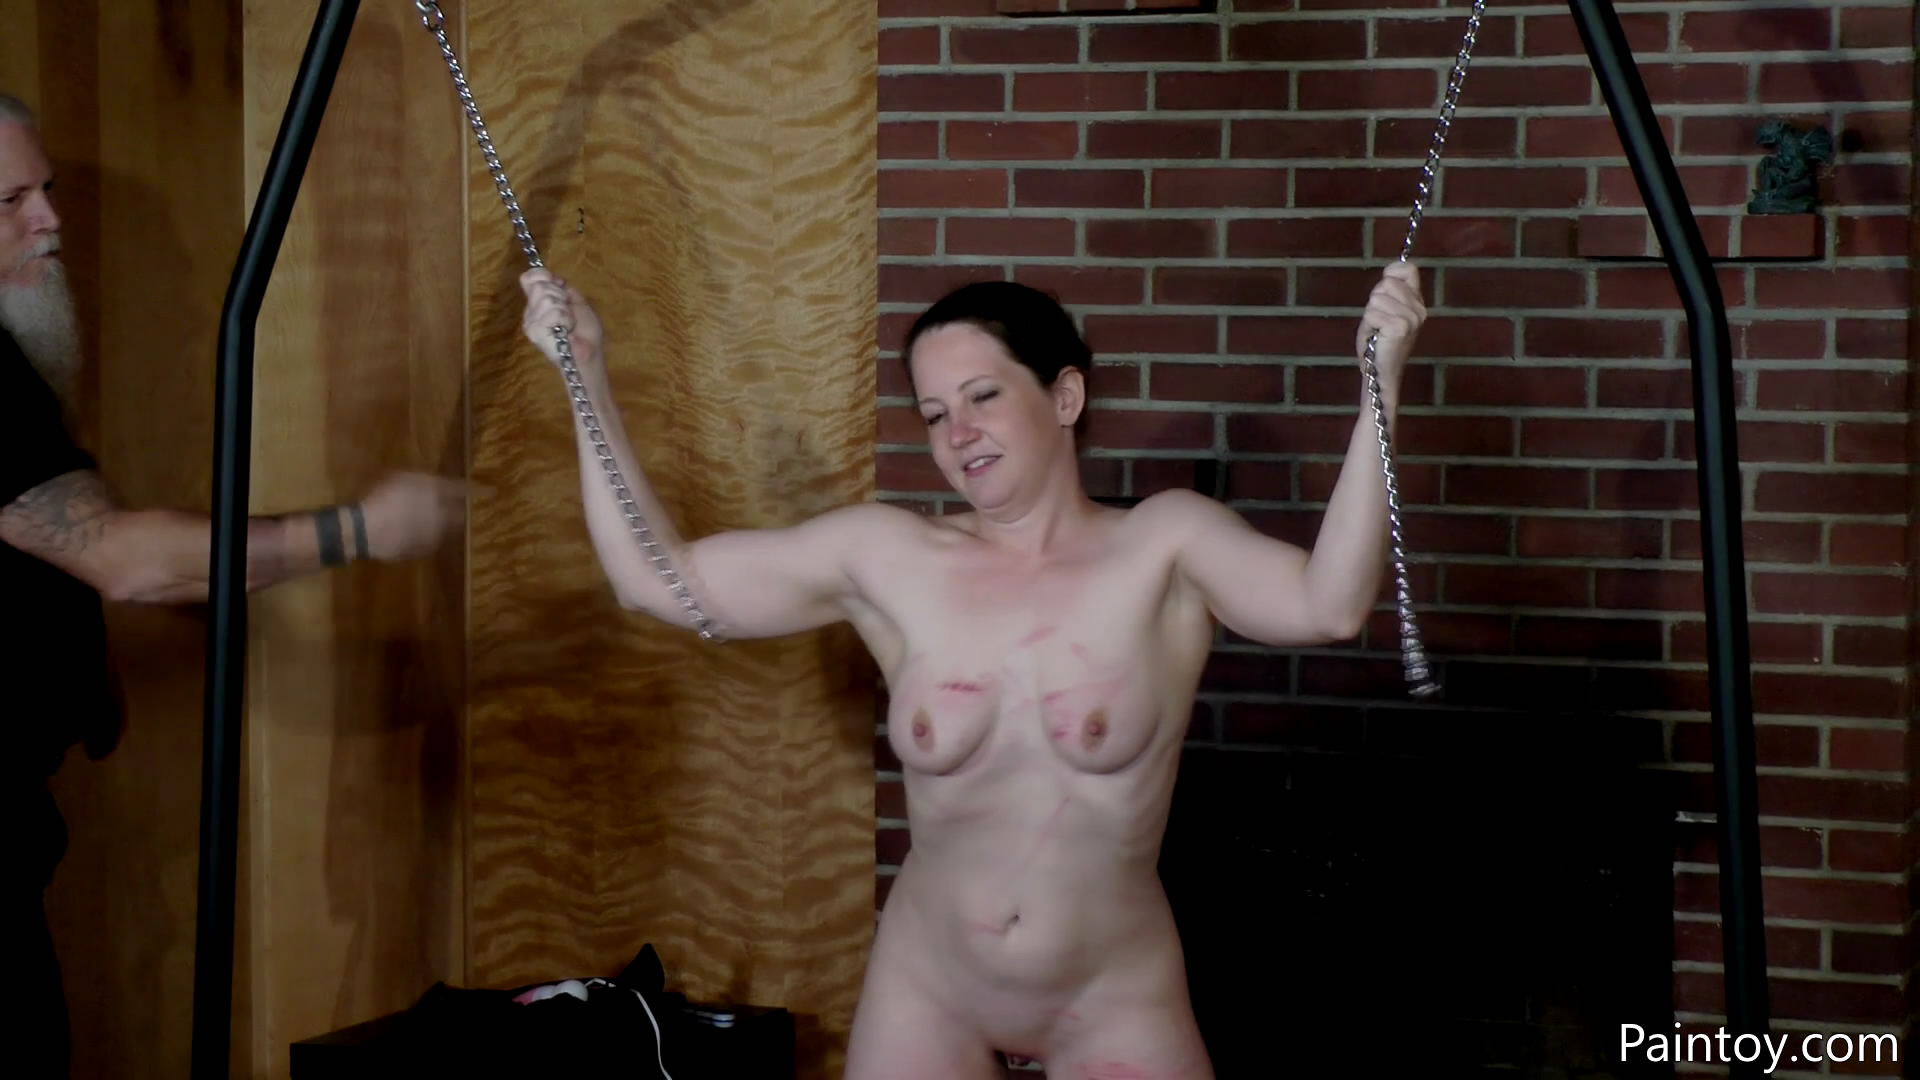 Paintoy – MP4/Full HD – Talia – The Need To Suffer 4